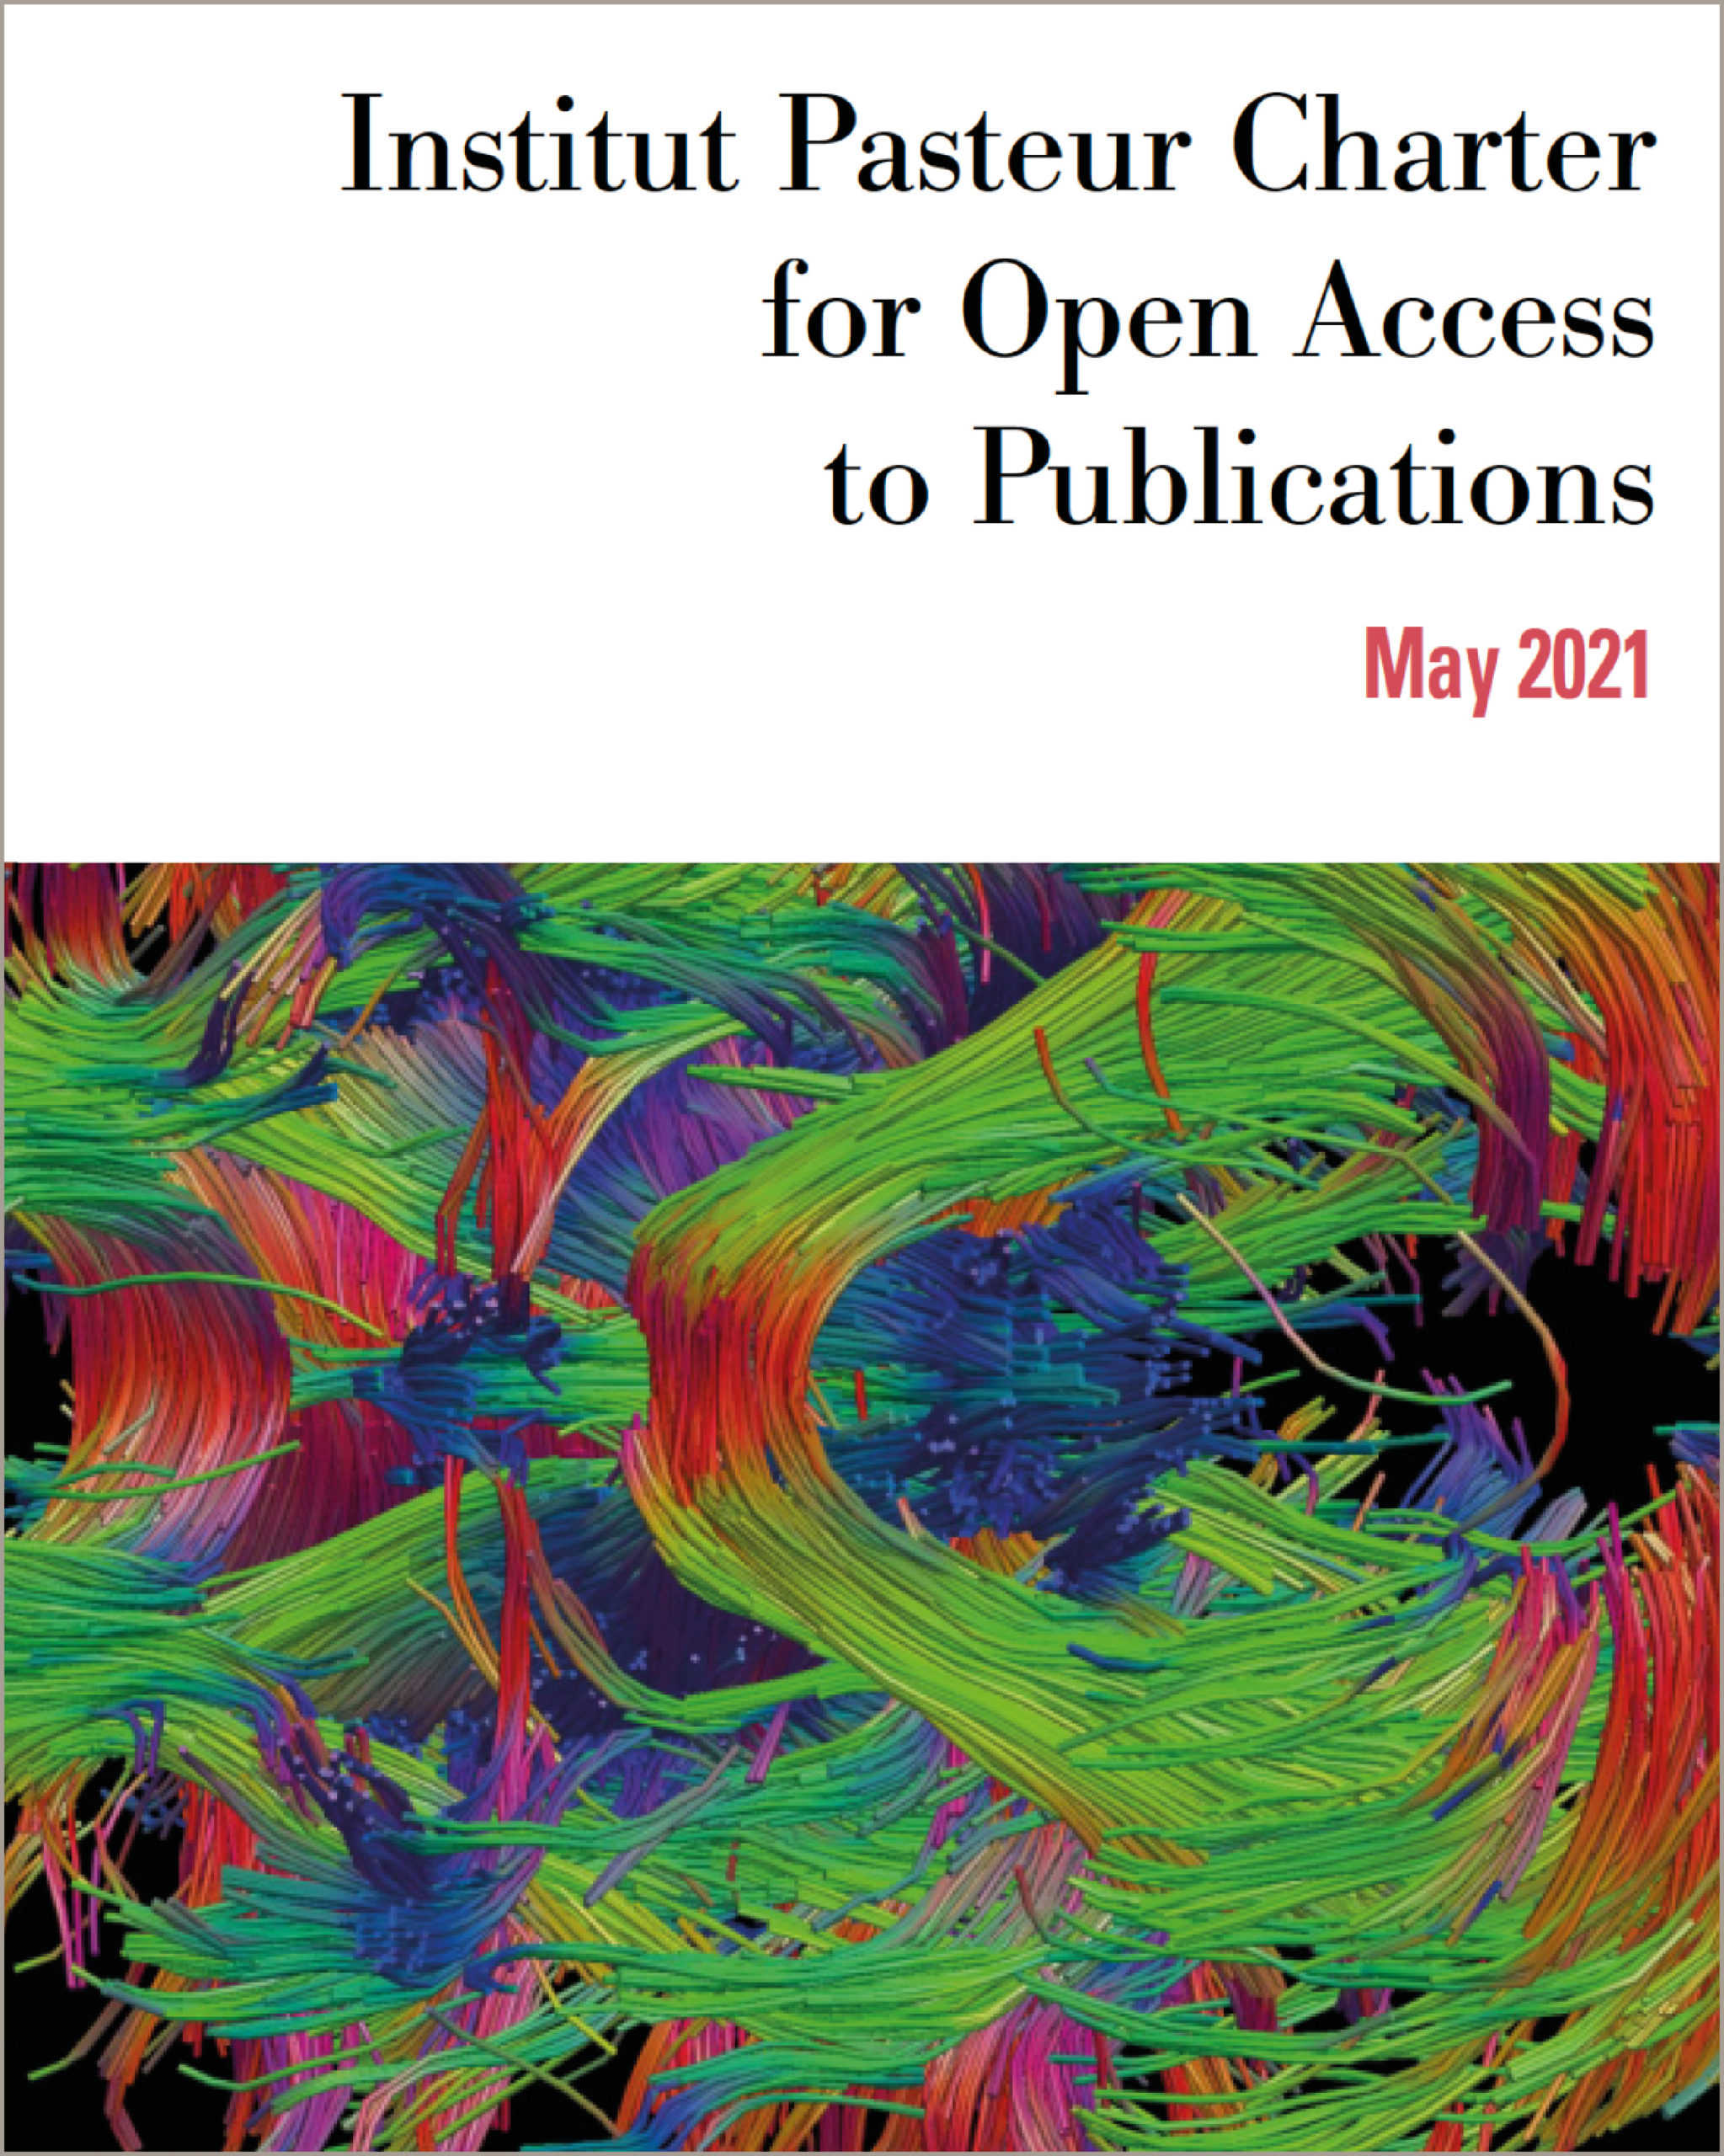 Institut Pasteur Charter for Open Access to Publications